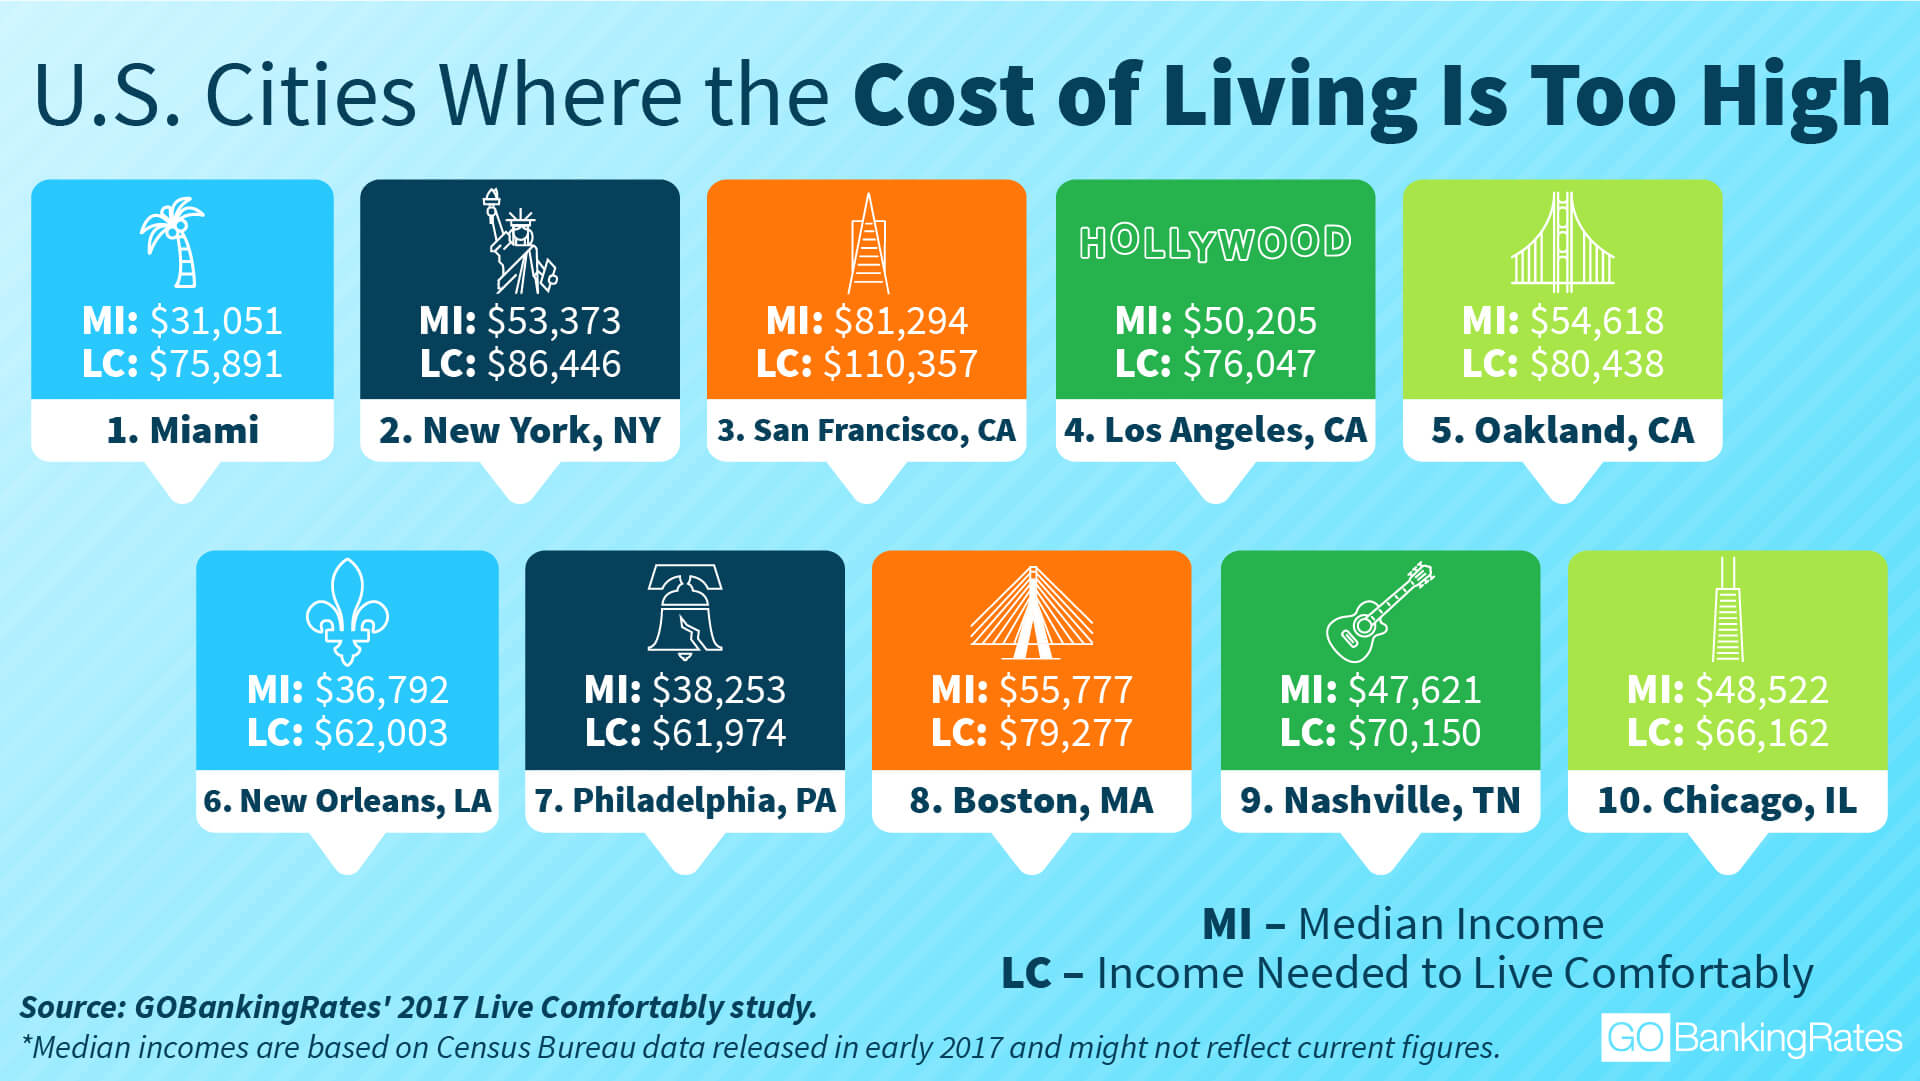 cost of living in miami Miami florida national cost of living index 109 99 100 index miami florida for example, if the cost of living in the city you are looking to move to is higher than that of miami, fl, then you would need to earn a higher salary in order to enjoy the same standard of living.